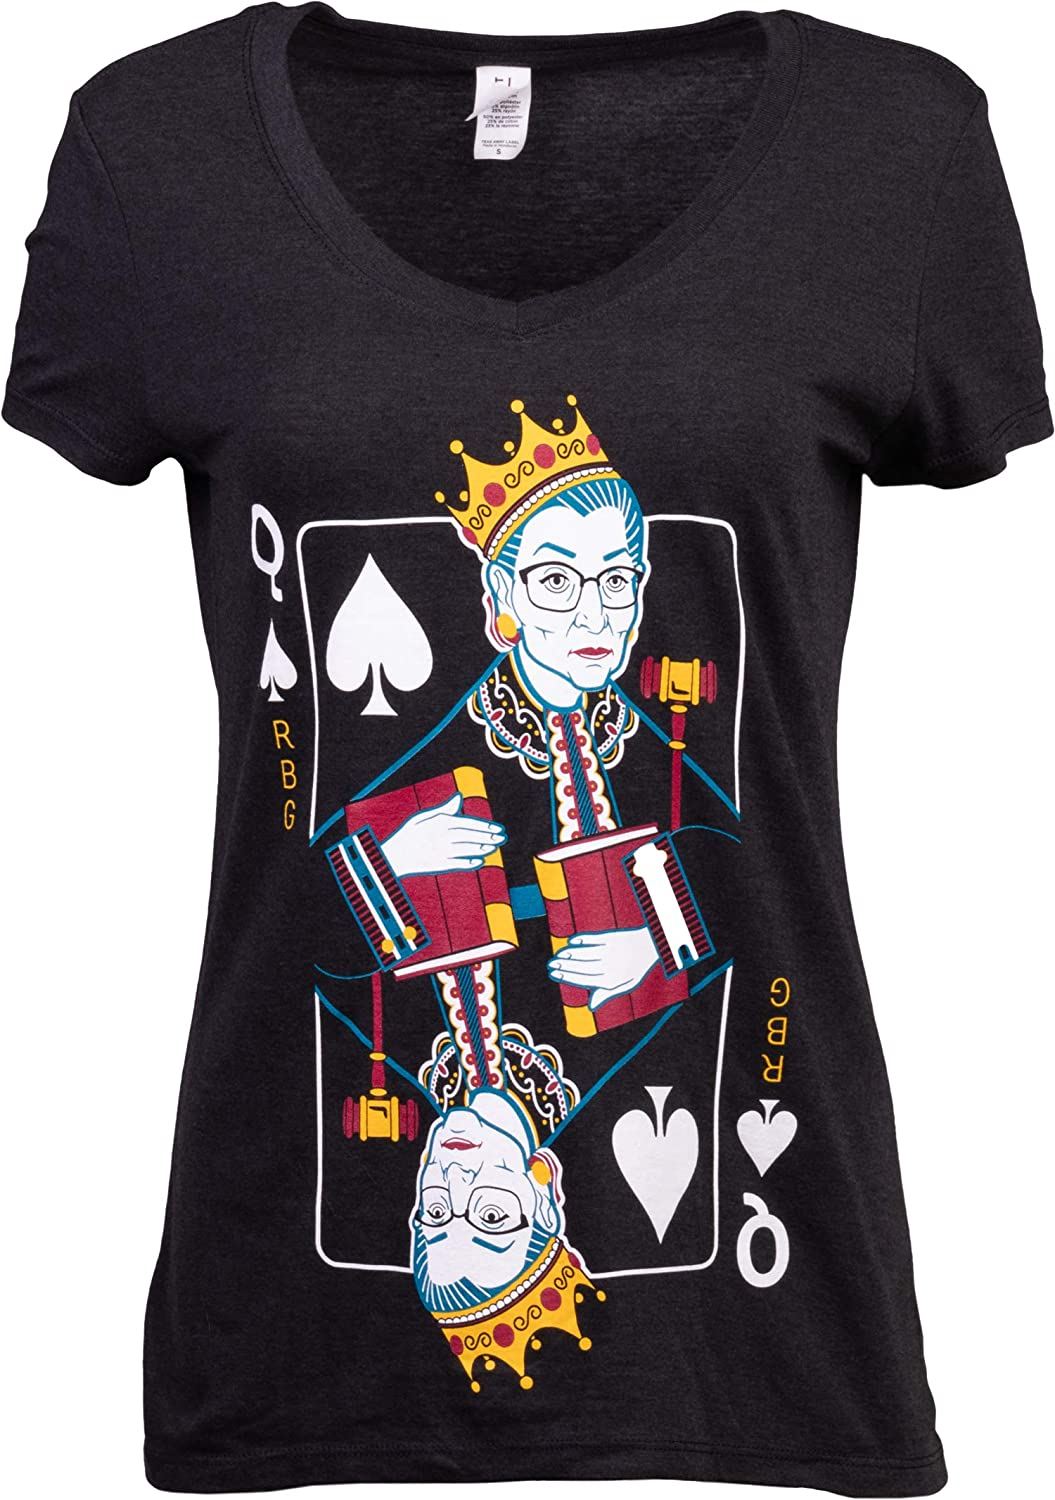 Queen R.B.G. Funny Progressive Liberal Ruth Bombing Limited time cheap sale free shipping Bader Women Ginsburg